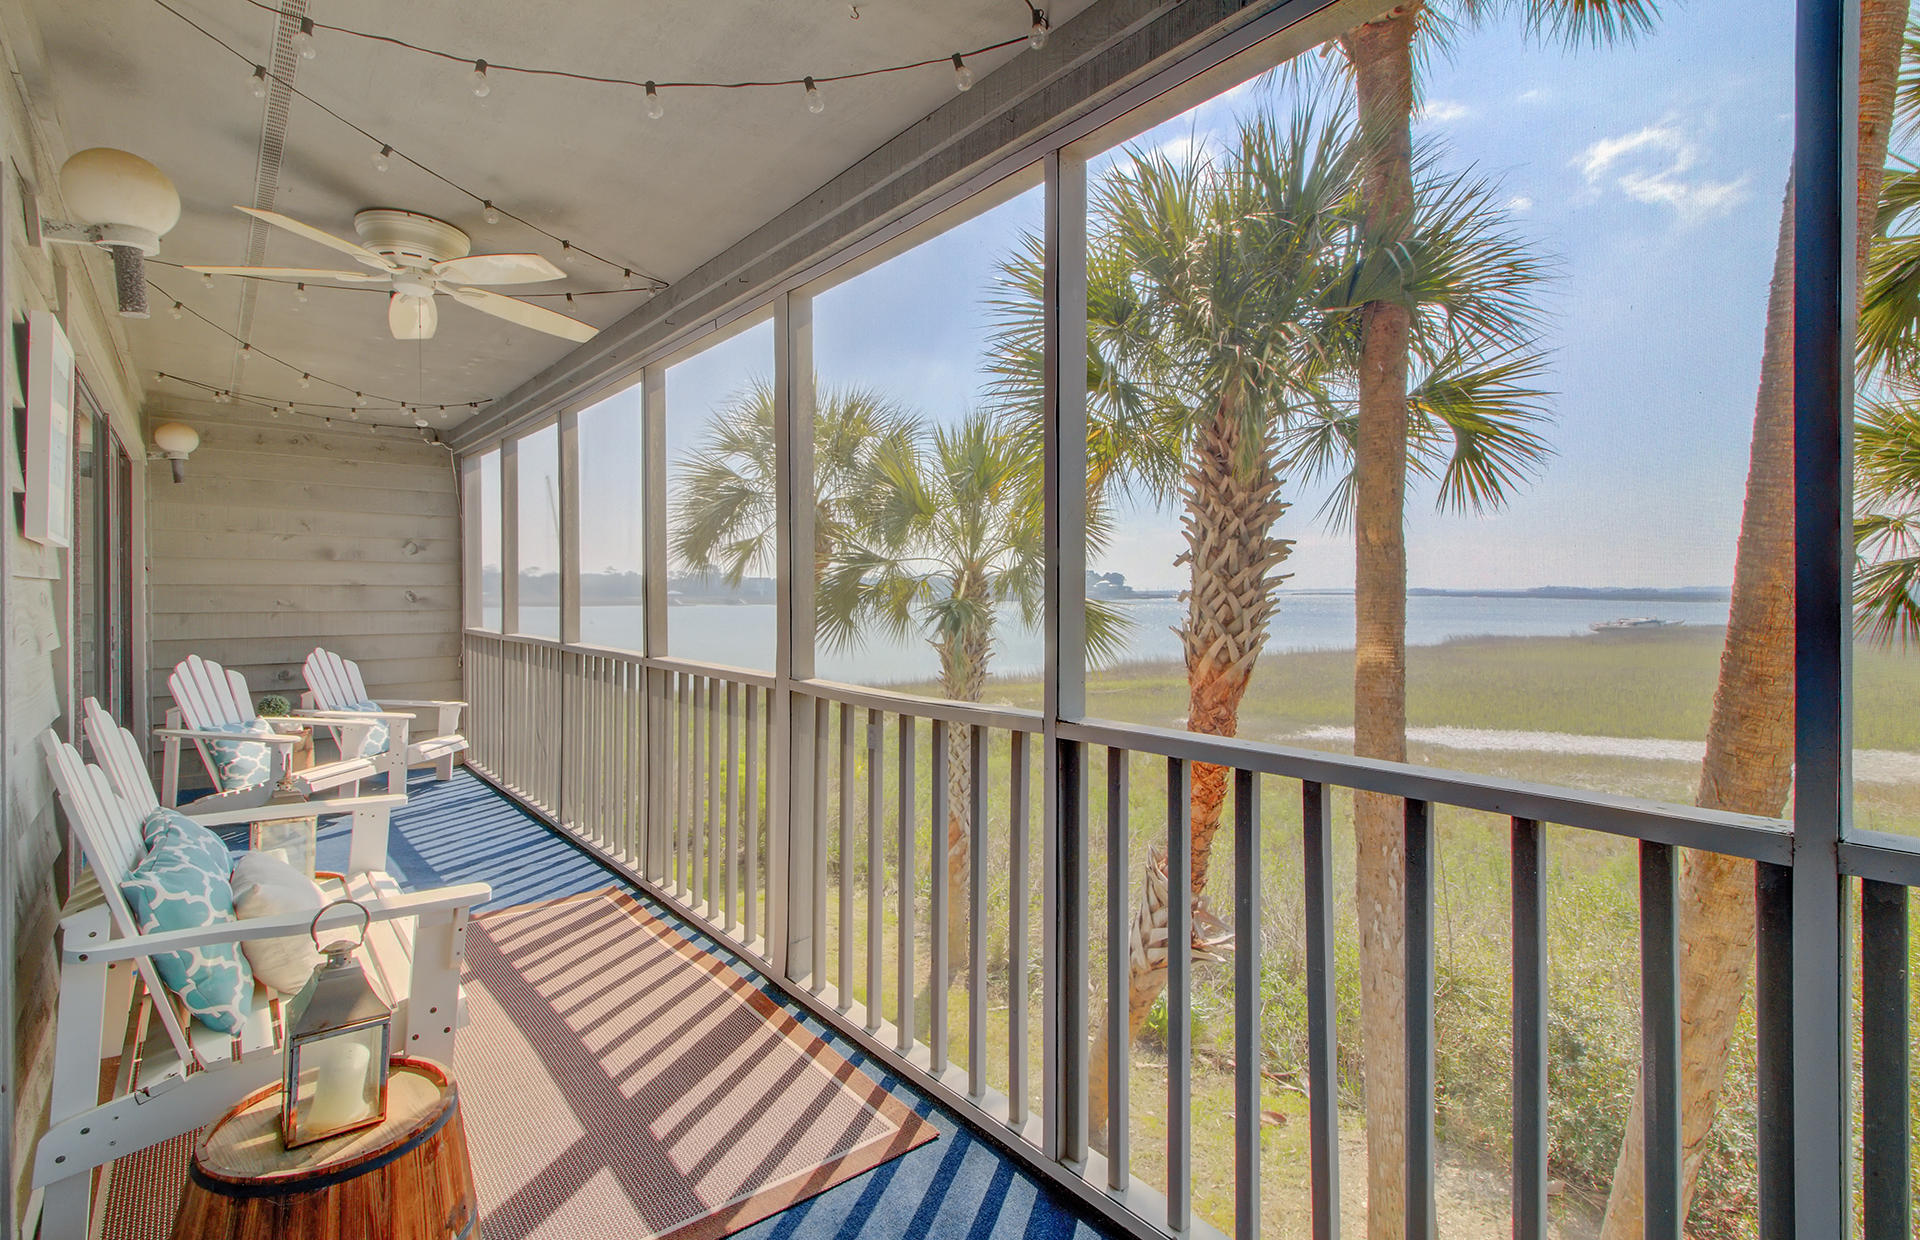 Mariners Cay Homes For Sale - 90 Mariners Cay, Folly Beach, SC - 12